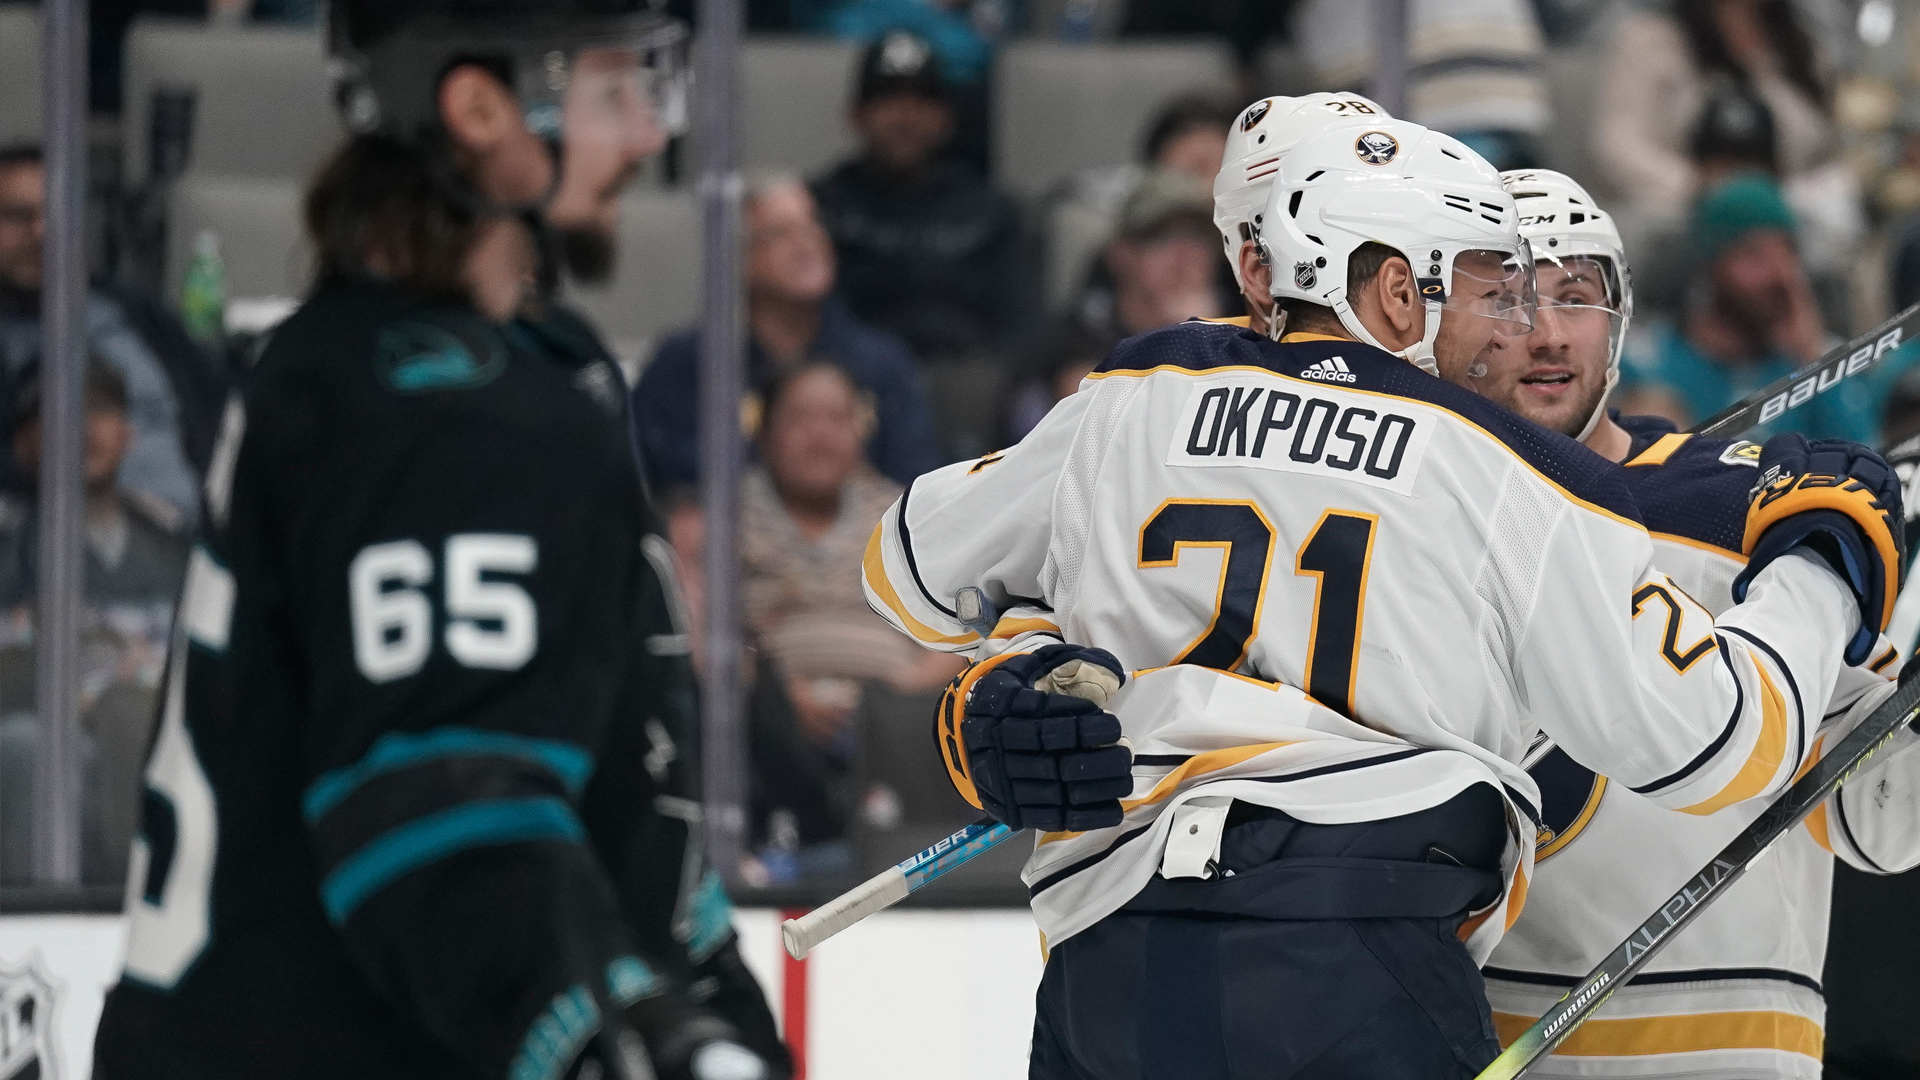 Sharks' three-game winning streak ends with tough 4-3 loss to Sabres